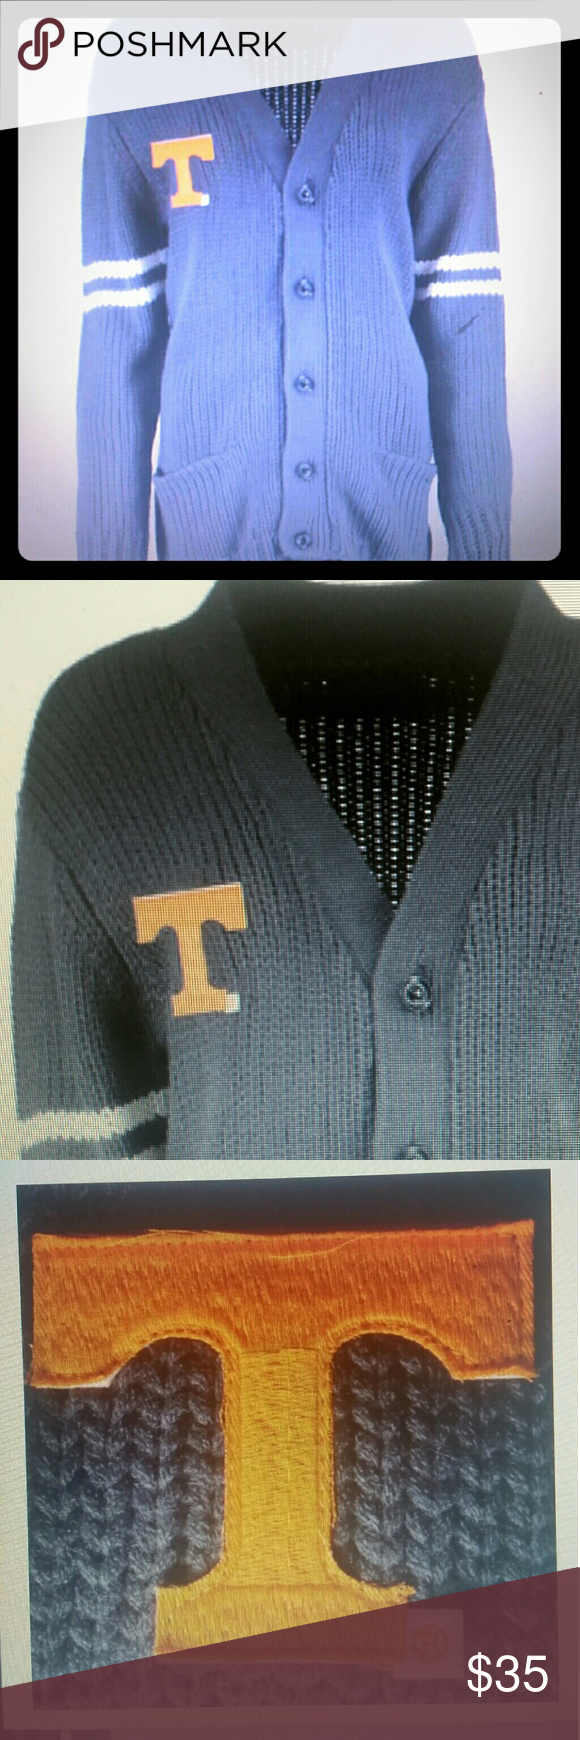 University of Tennessee sweater....NWT! Women's Let Loose by RNL charcoal Boyfriend Letter Sweater. Brand new with tags. Super comfy and cozy! Lists for 74.99 on Fanatics site. Open to reasonable offers. Or bundle with at least one other item and receive 25% off your purchase! Let Loose by RNL Sweaters Cardigans